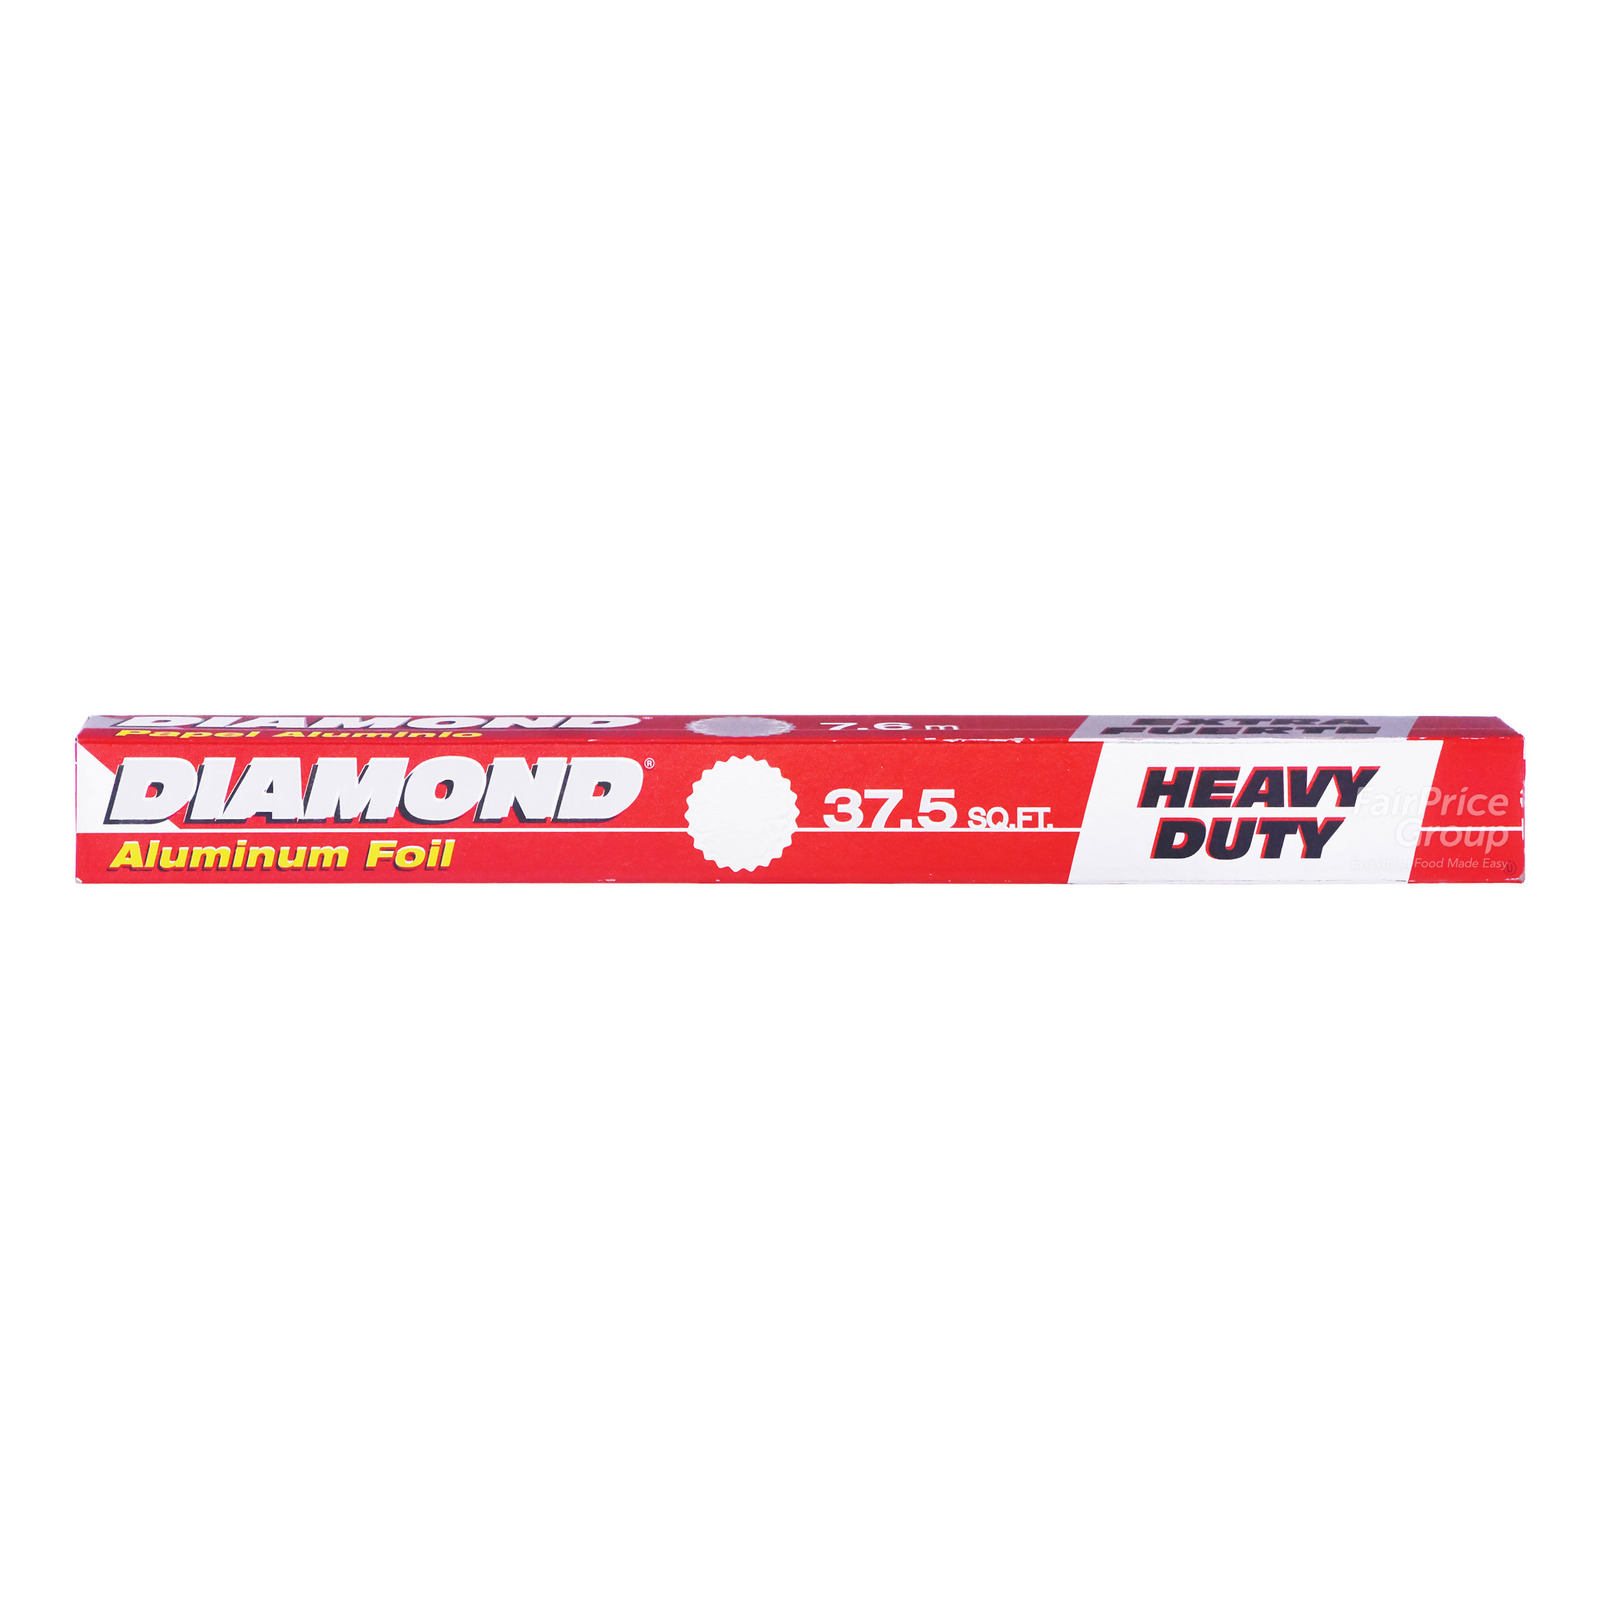 Diamond Aluminum Foil (37.5 square feet)